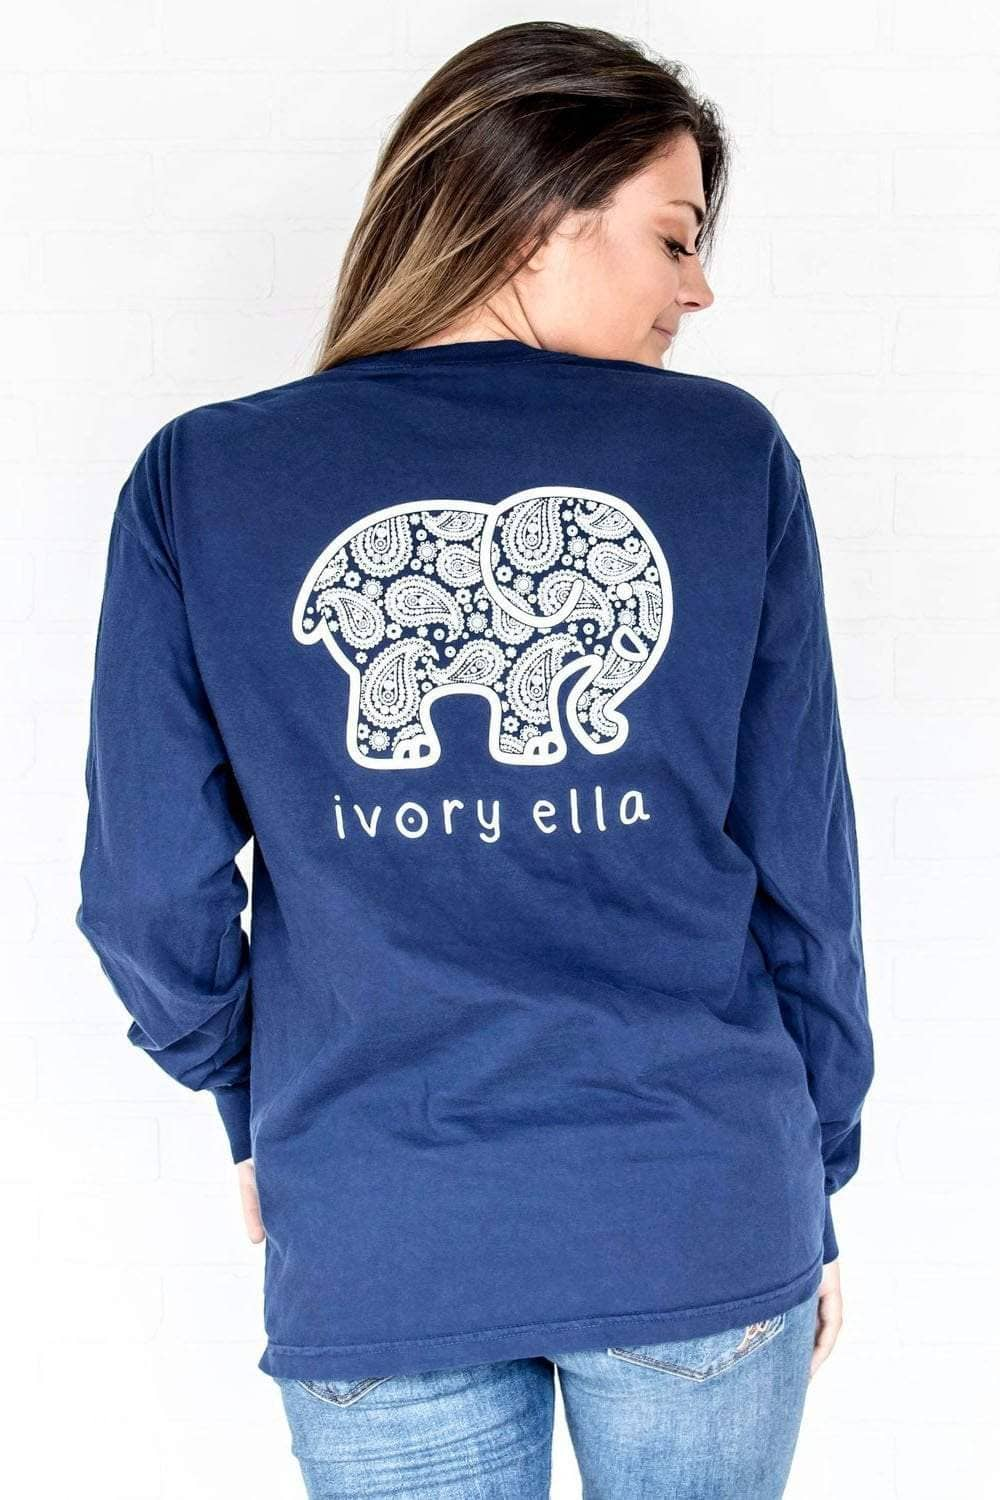 a06c7974592d5f Ivory Ella Women s Long Sleeve Shirts Navy   S Classic Fit Dark Navy  Inverse Paisley Tee